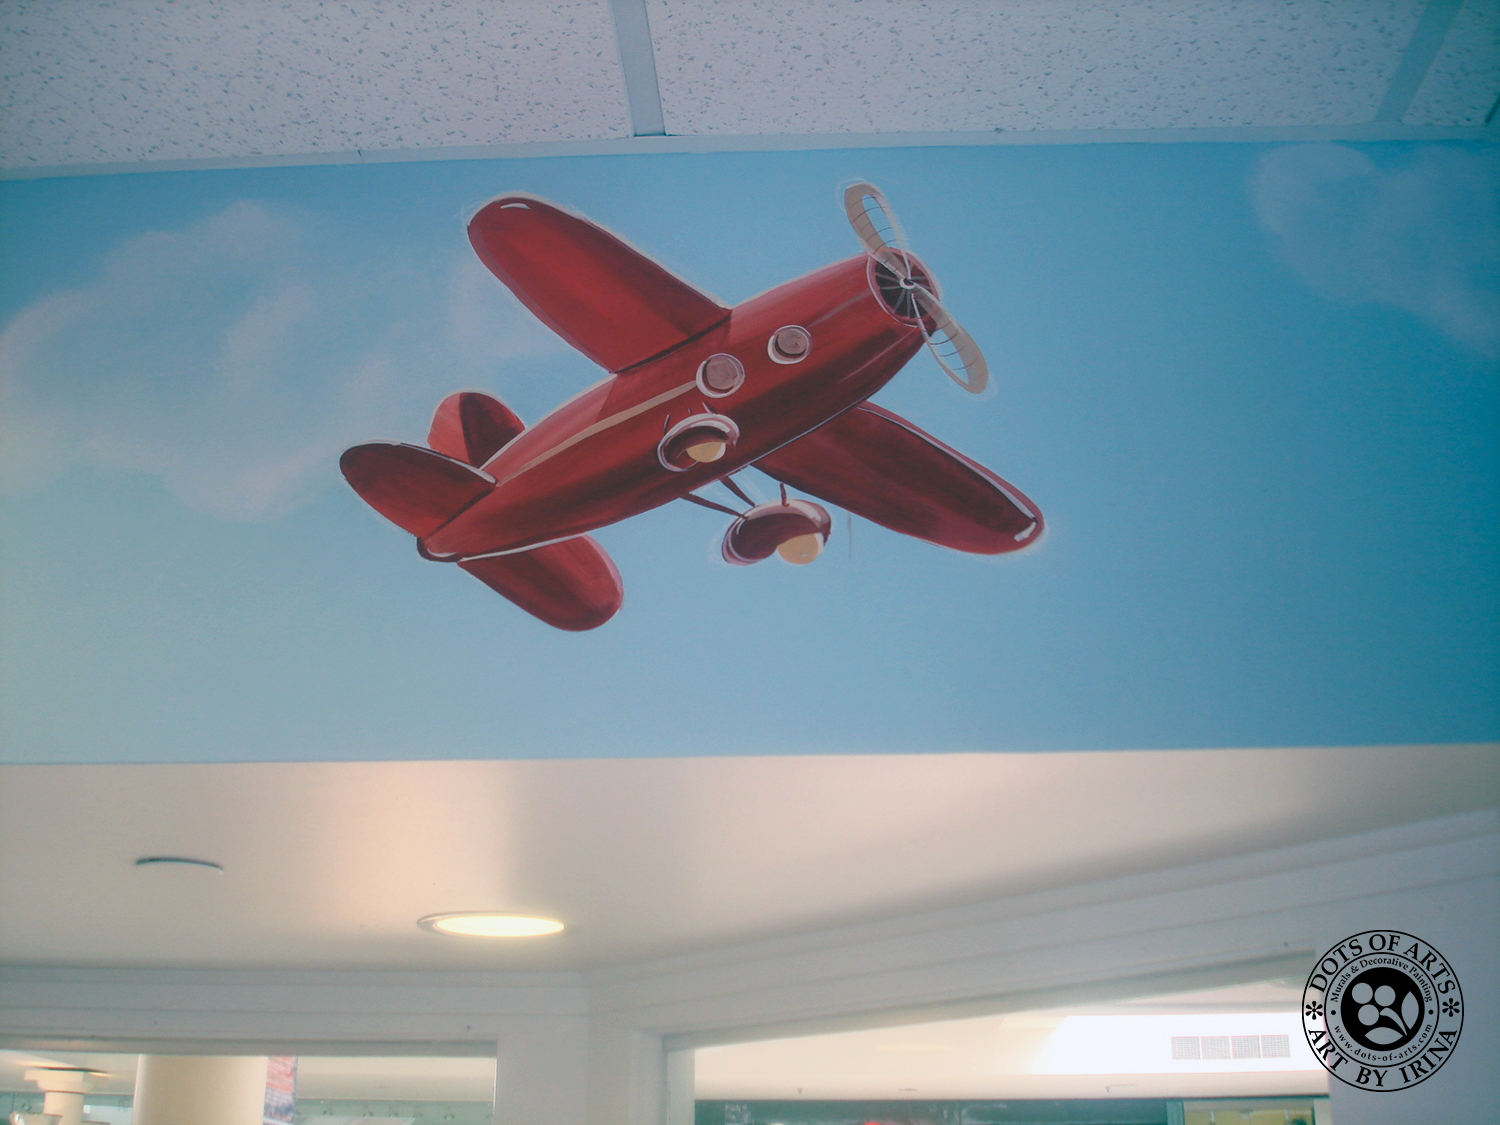 mural-sky-red-air-plane-custom-painted-kid-cutz-hair-salon-woodbridge-mall-NJ-dots-of-arts-copyright2015.jpg